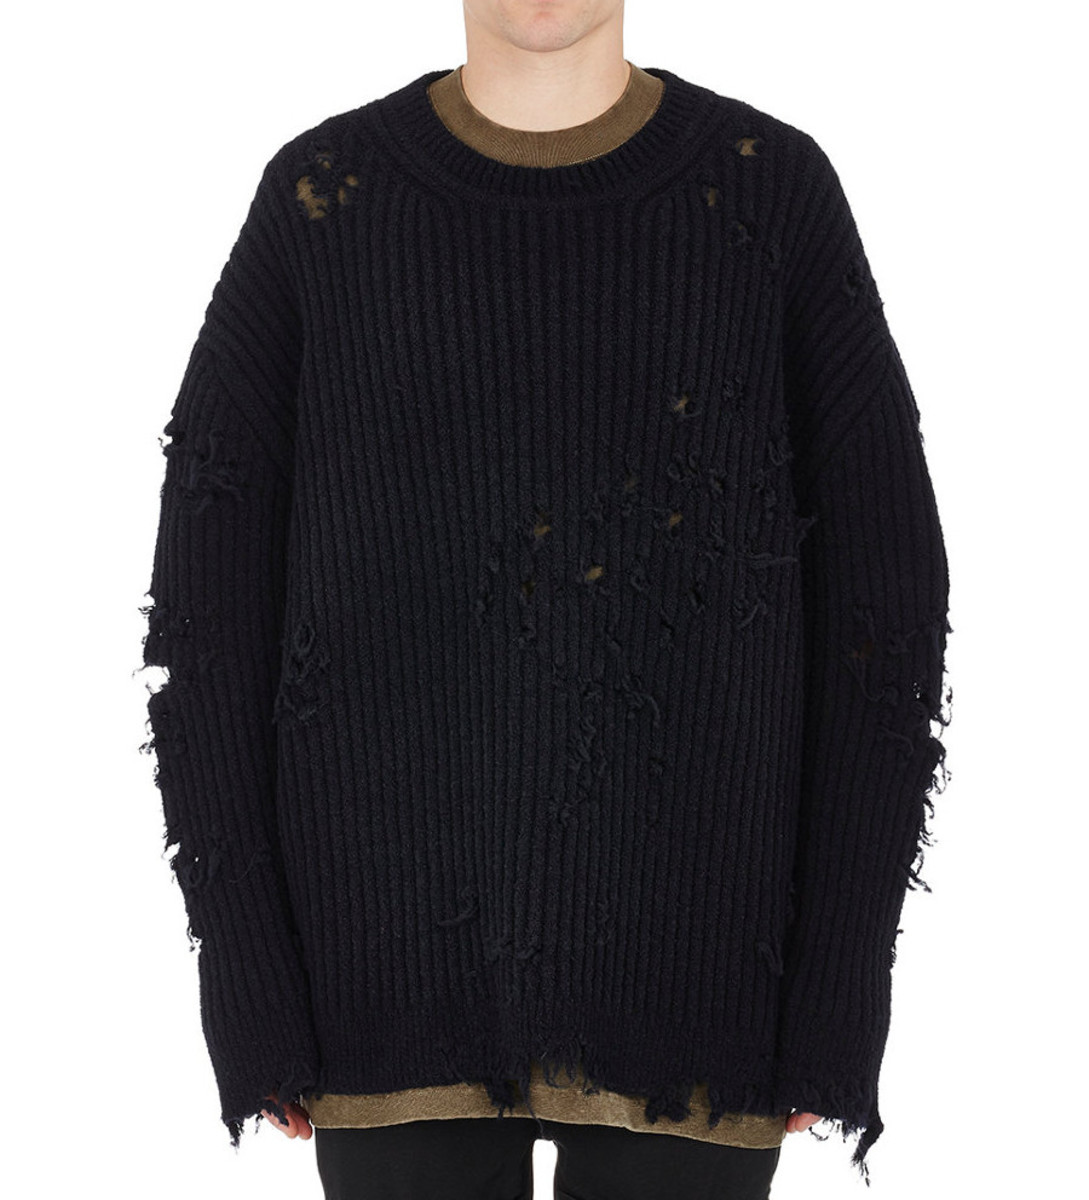 yeezy-season-3-destroyed-rib-knit-sweater.jpg